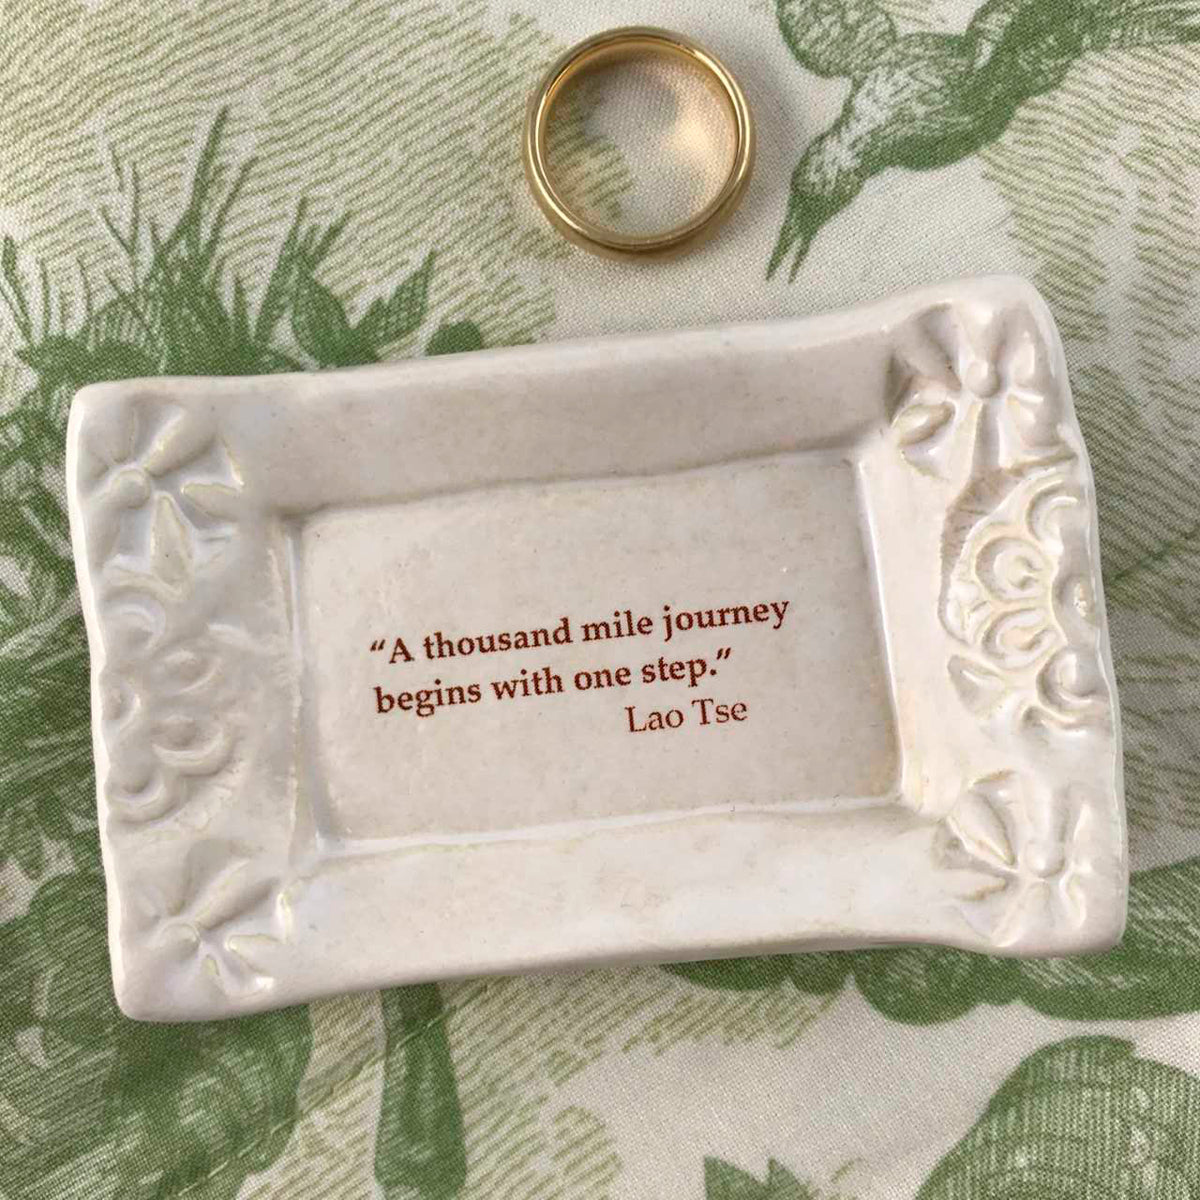 Handmade dish with quote by Lao Tse.